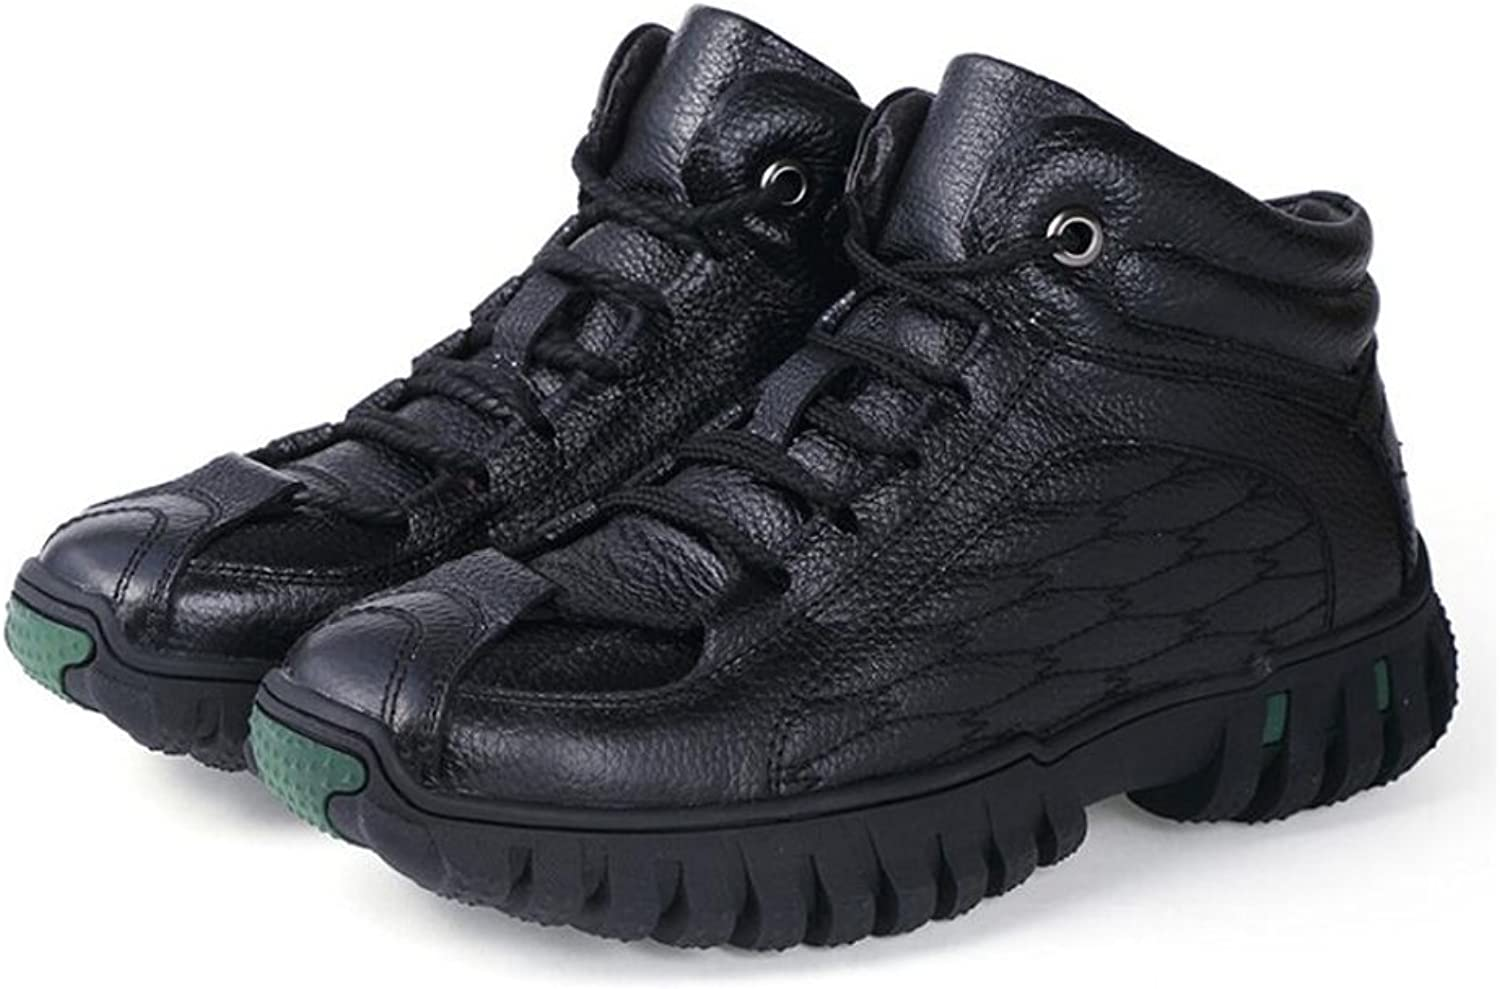 Men's Leather Spring Fall Mountaineer shoes Rubber Non-Slip High-Top Sneakers Tread Anti-Slip,Wearproof Leather Leather Hiking Climbing Athletic shoes (color   A, Size   38)